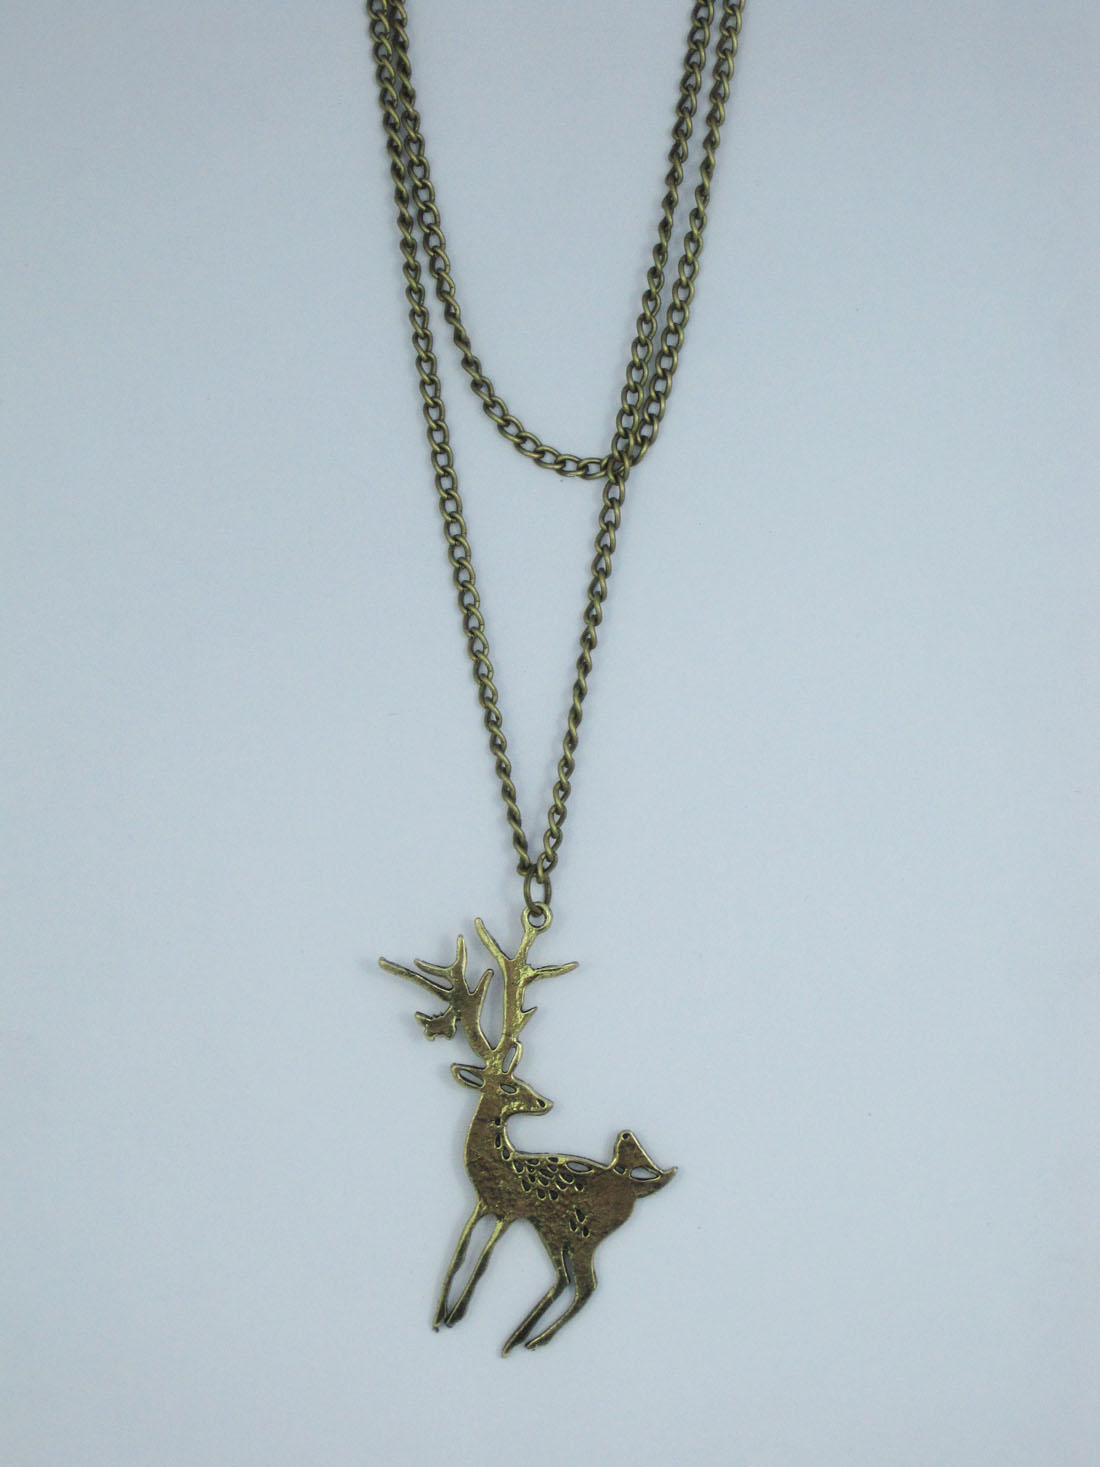 Zinc Alloy Necklace